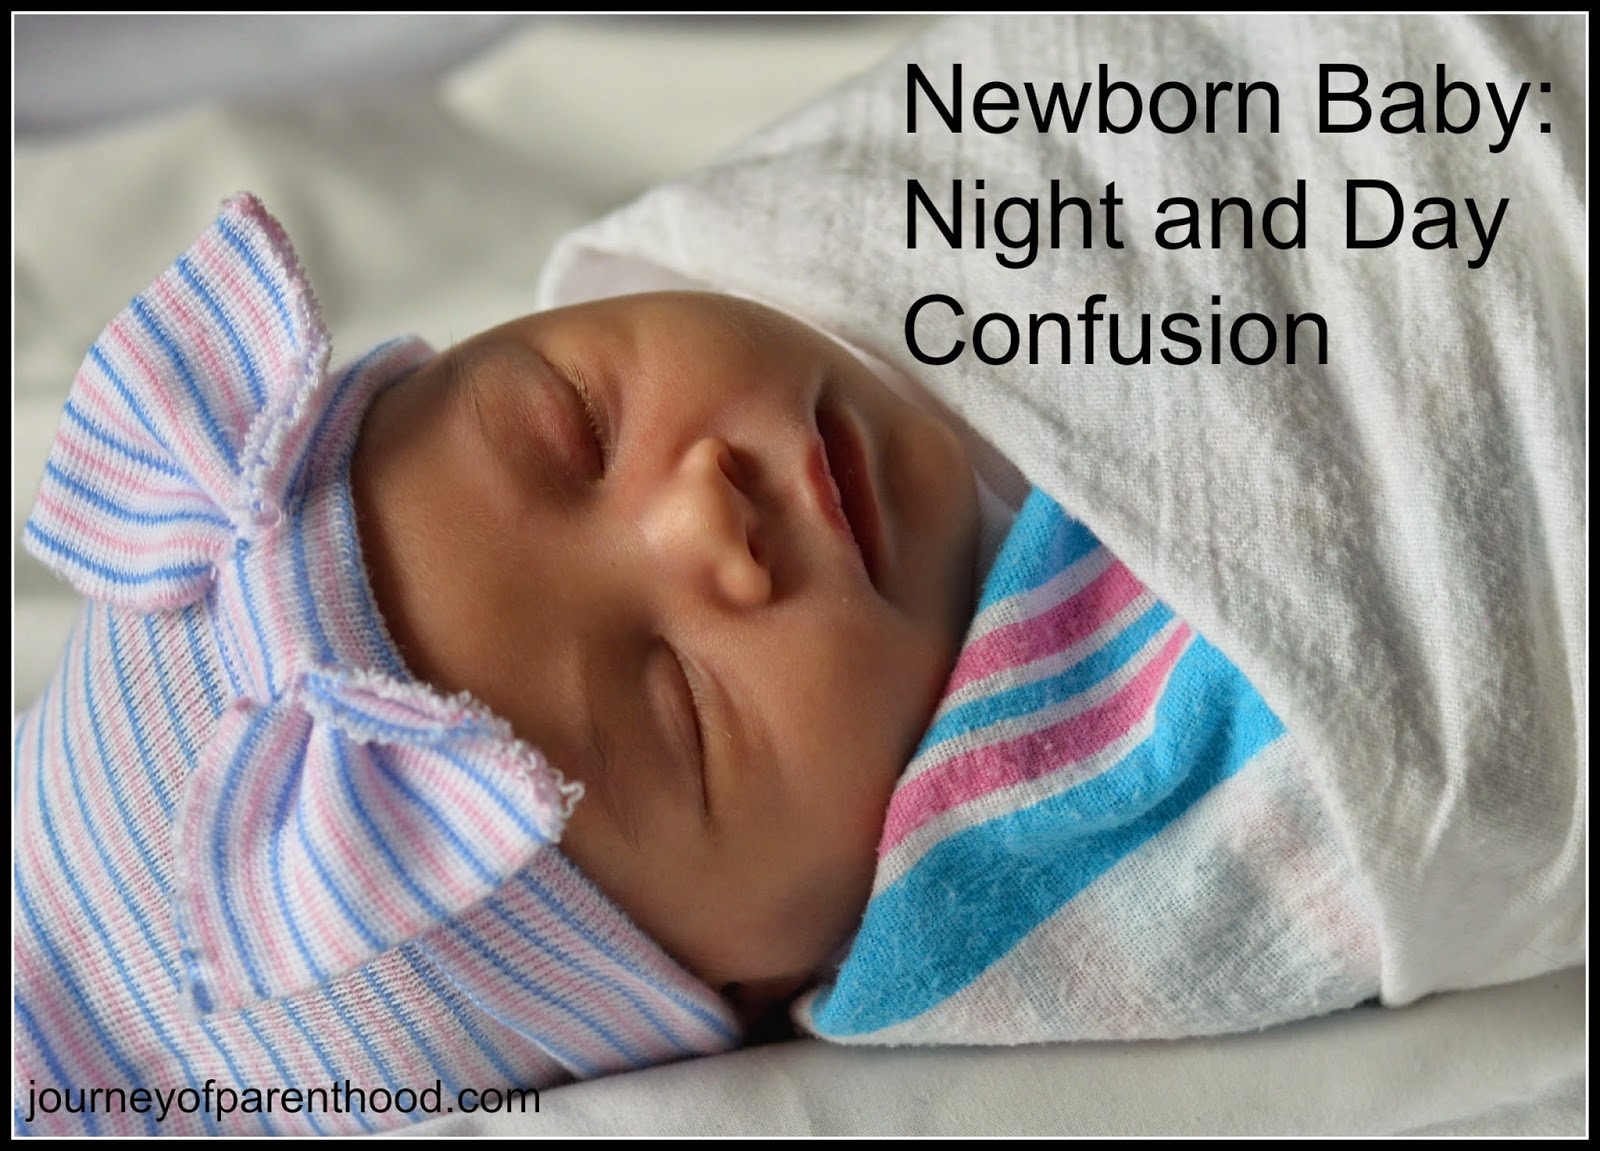 Newborn Bedtime Dealing With Night And Day Confusion In A Newborn The Journey Of